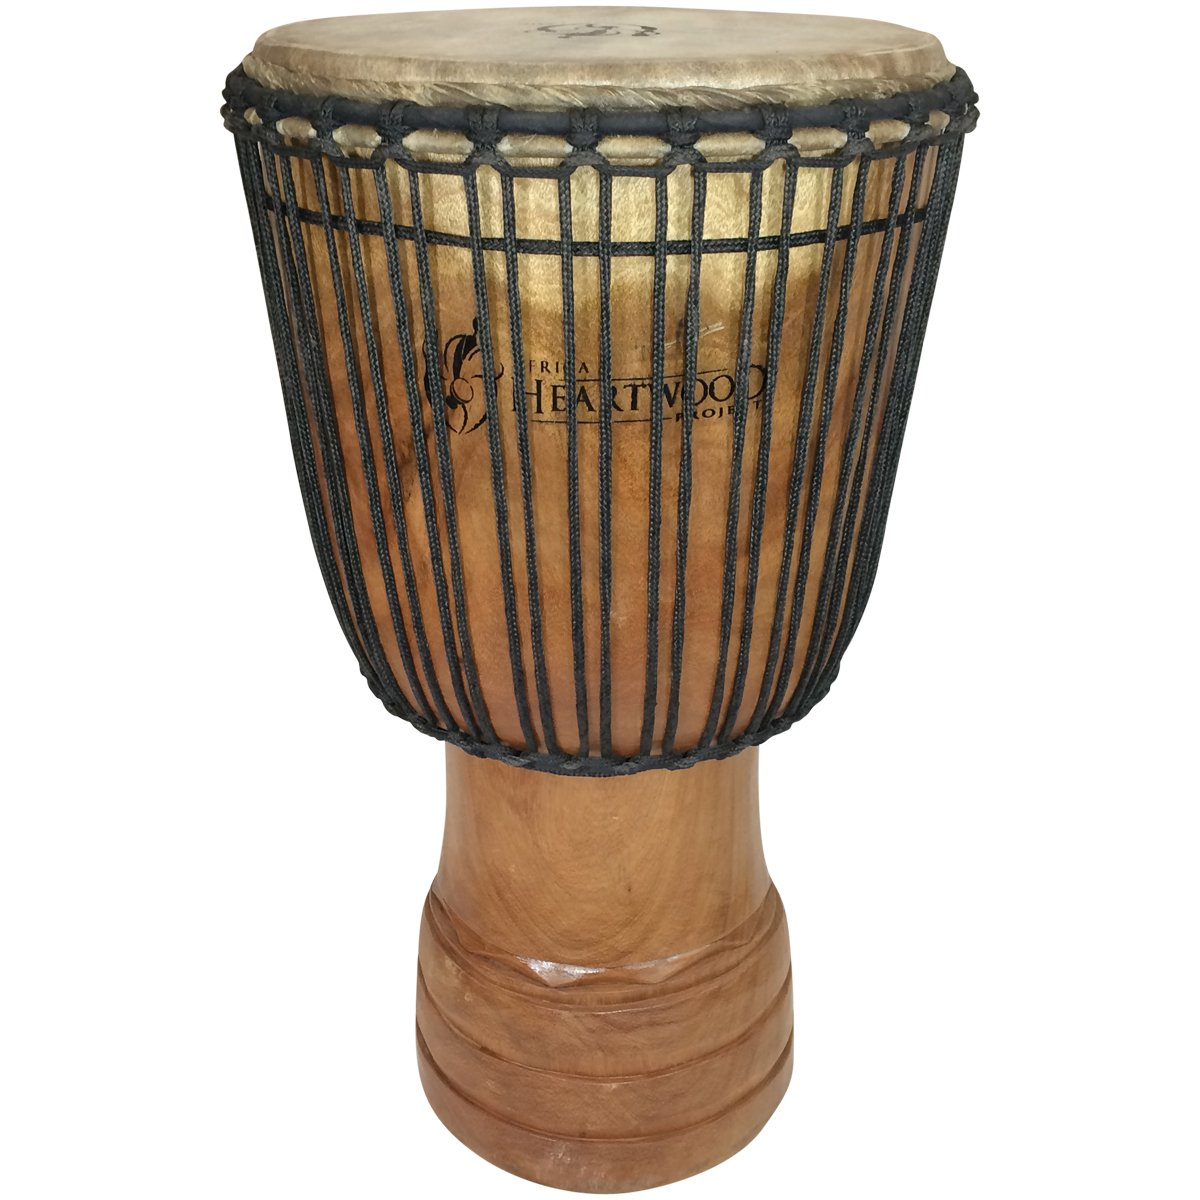 Hand-carved Djembe Drum From Africa - 14''x25'' Oversize with Big Bass